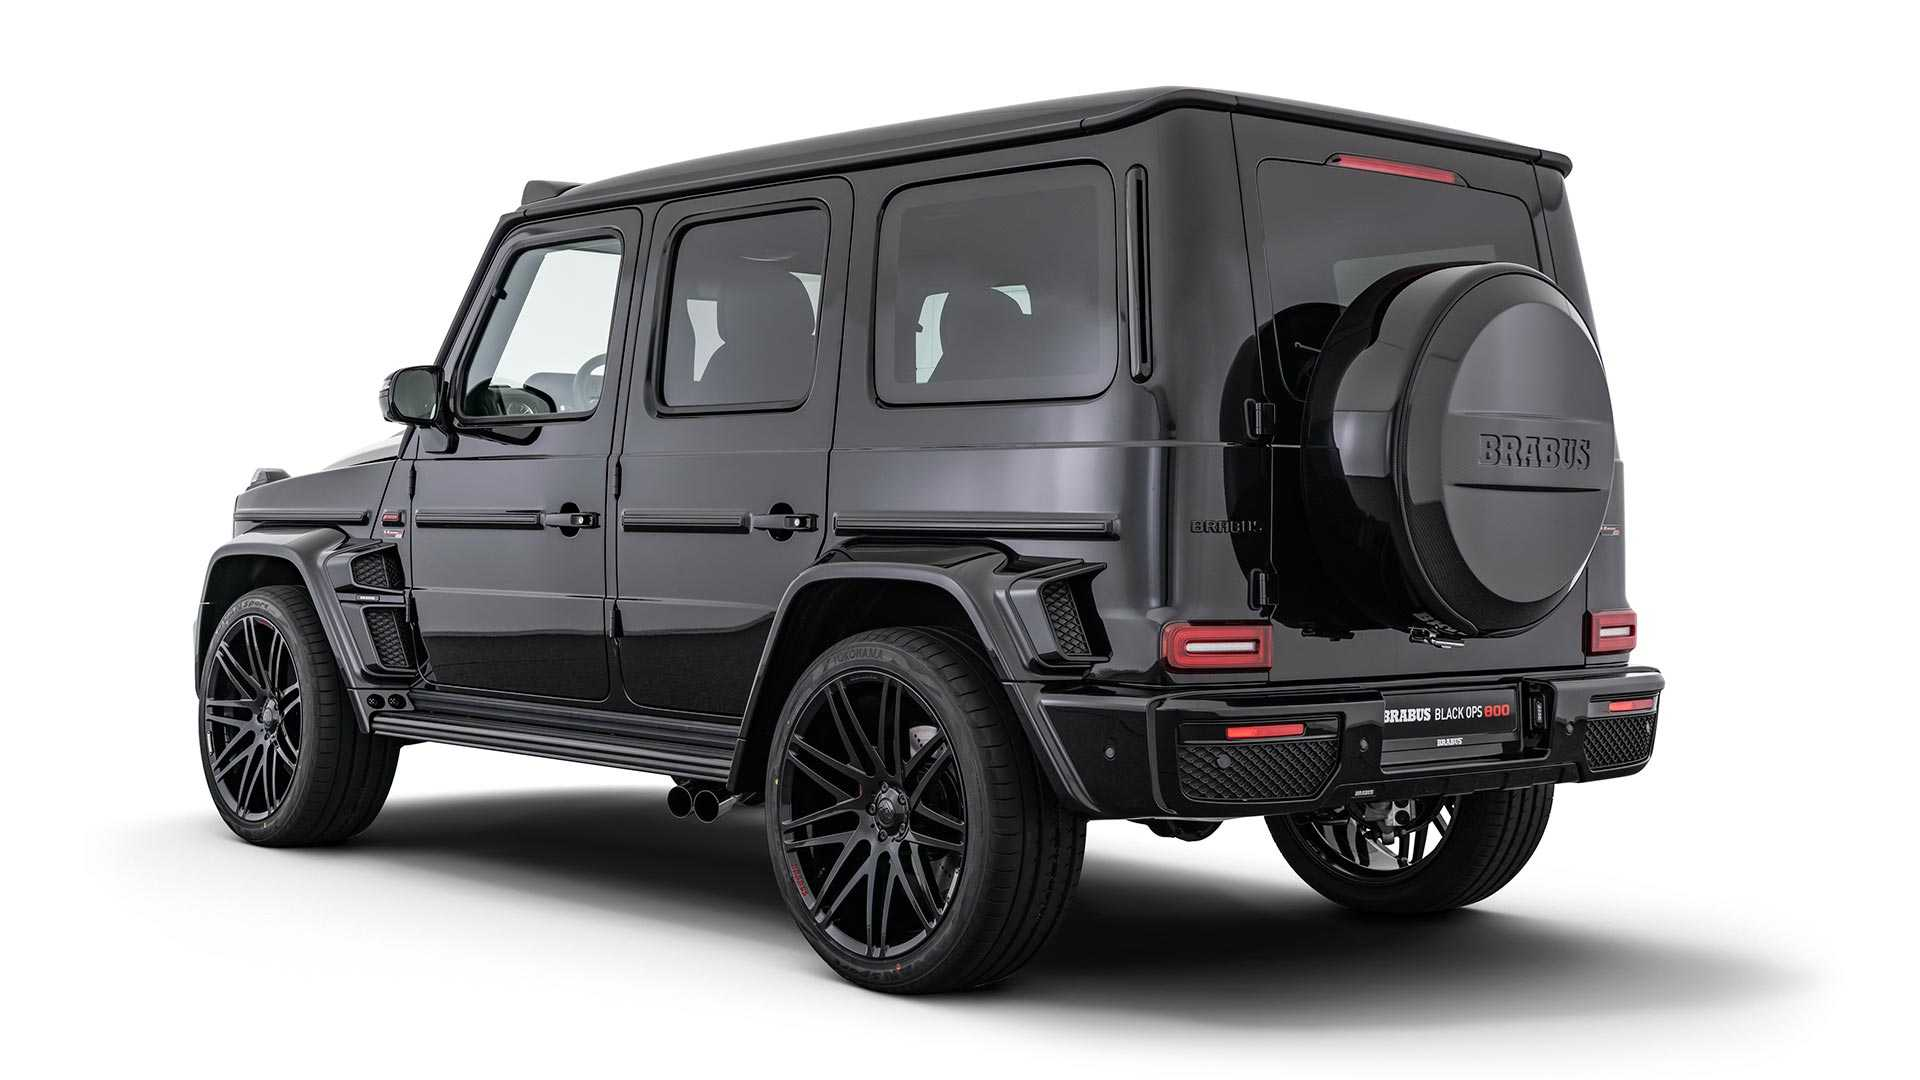 Brabus Mercedes-AMG G63 Black OPS